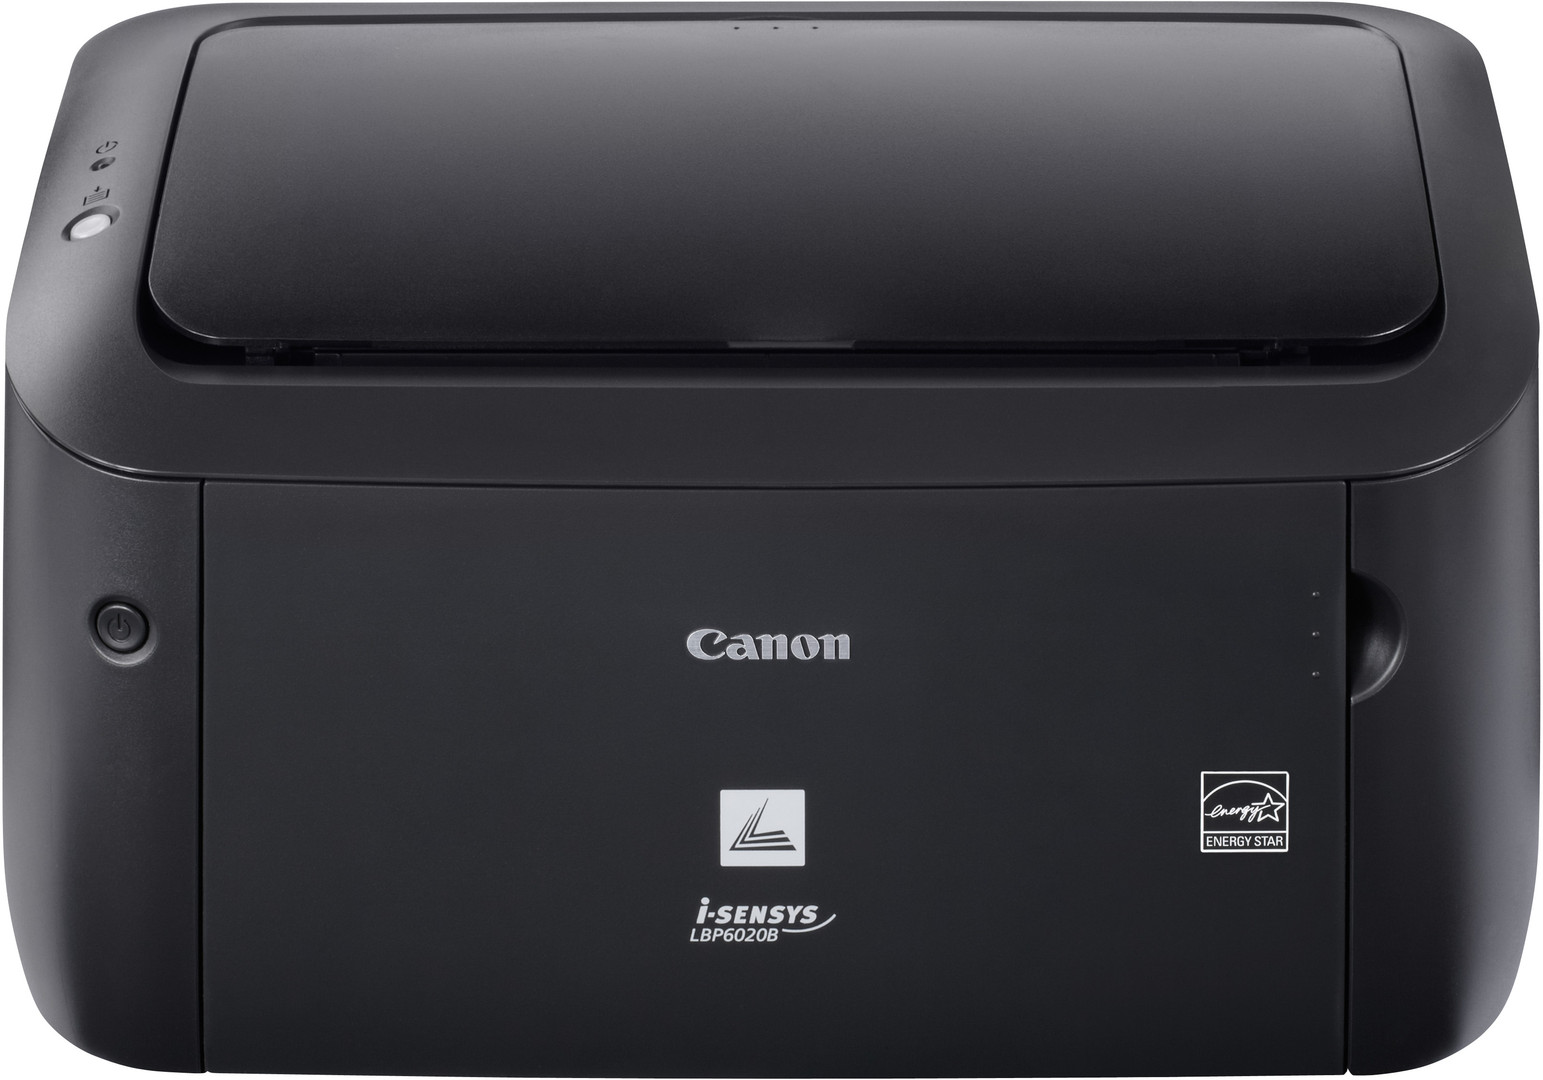 pilote imprimante canon lbp 6020b pour windows 7 32bit